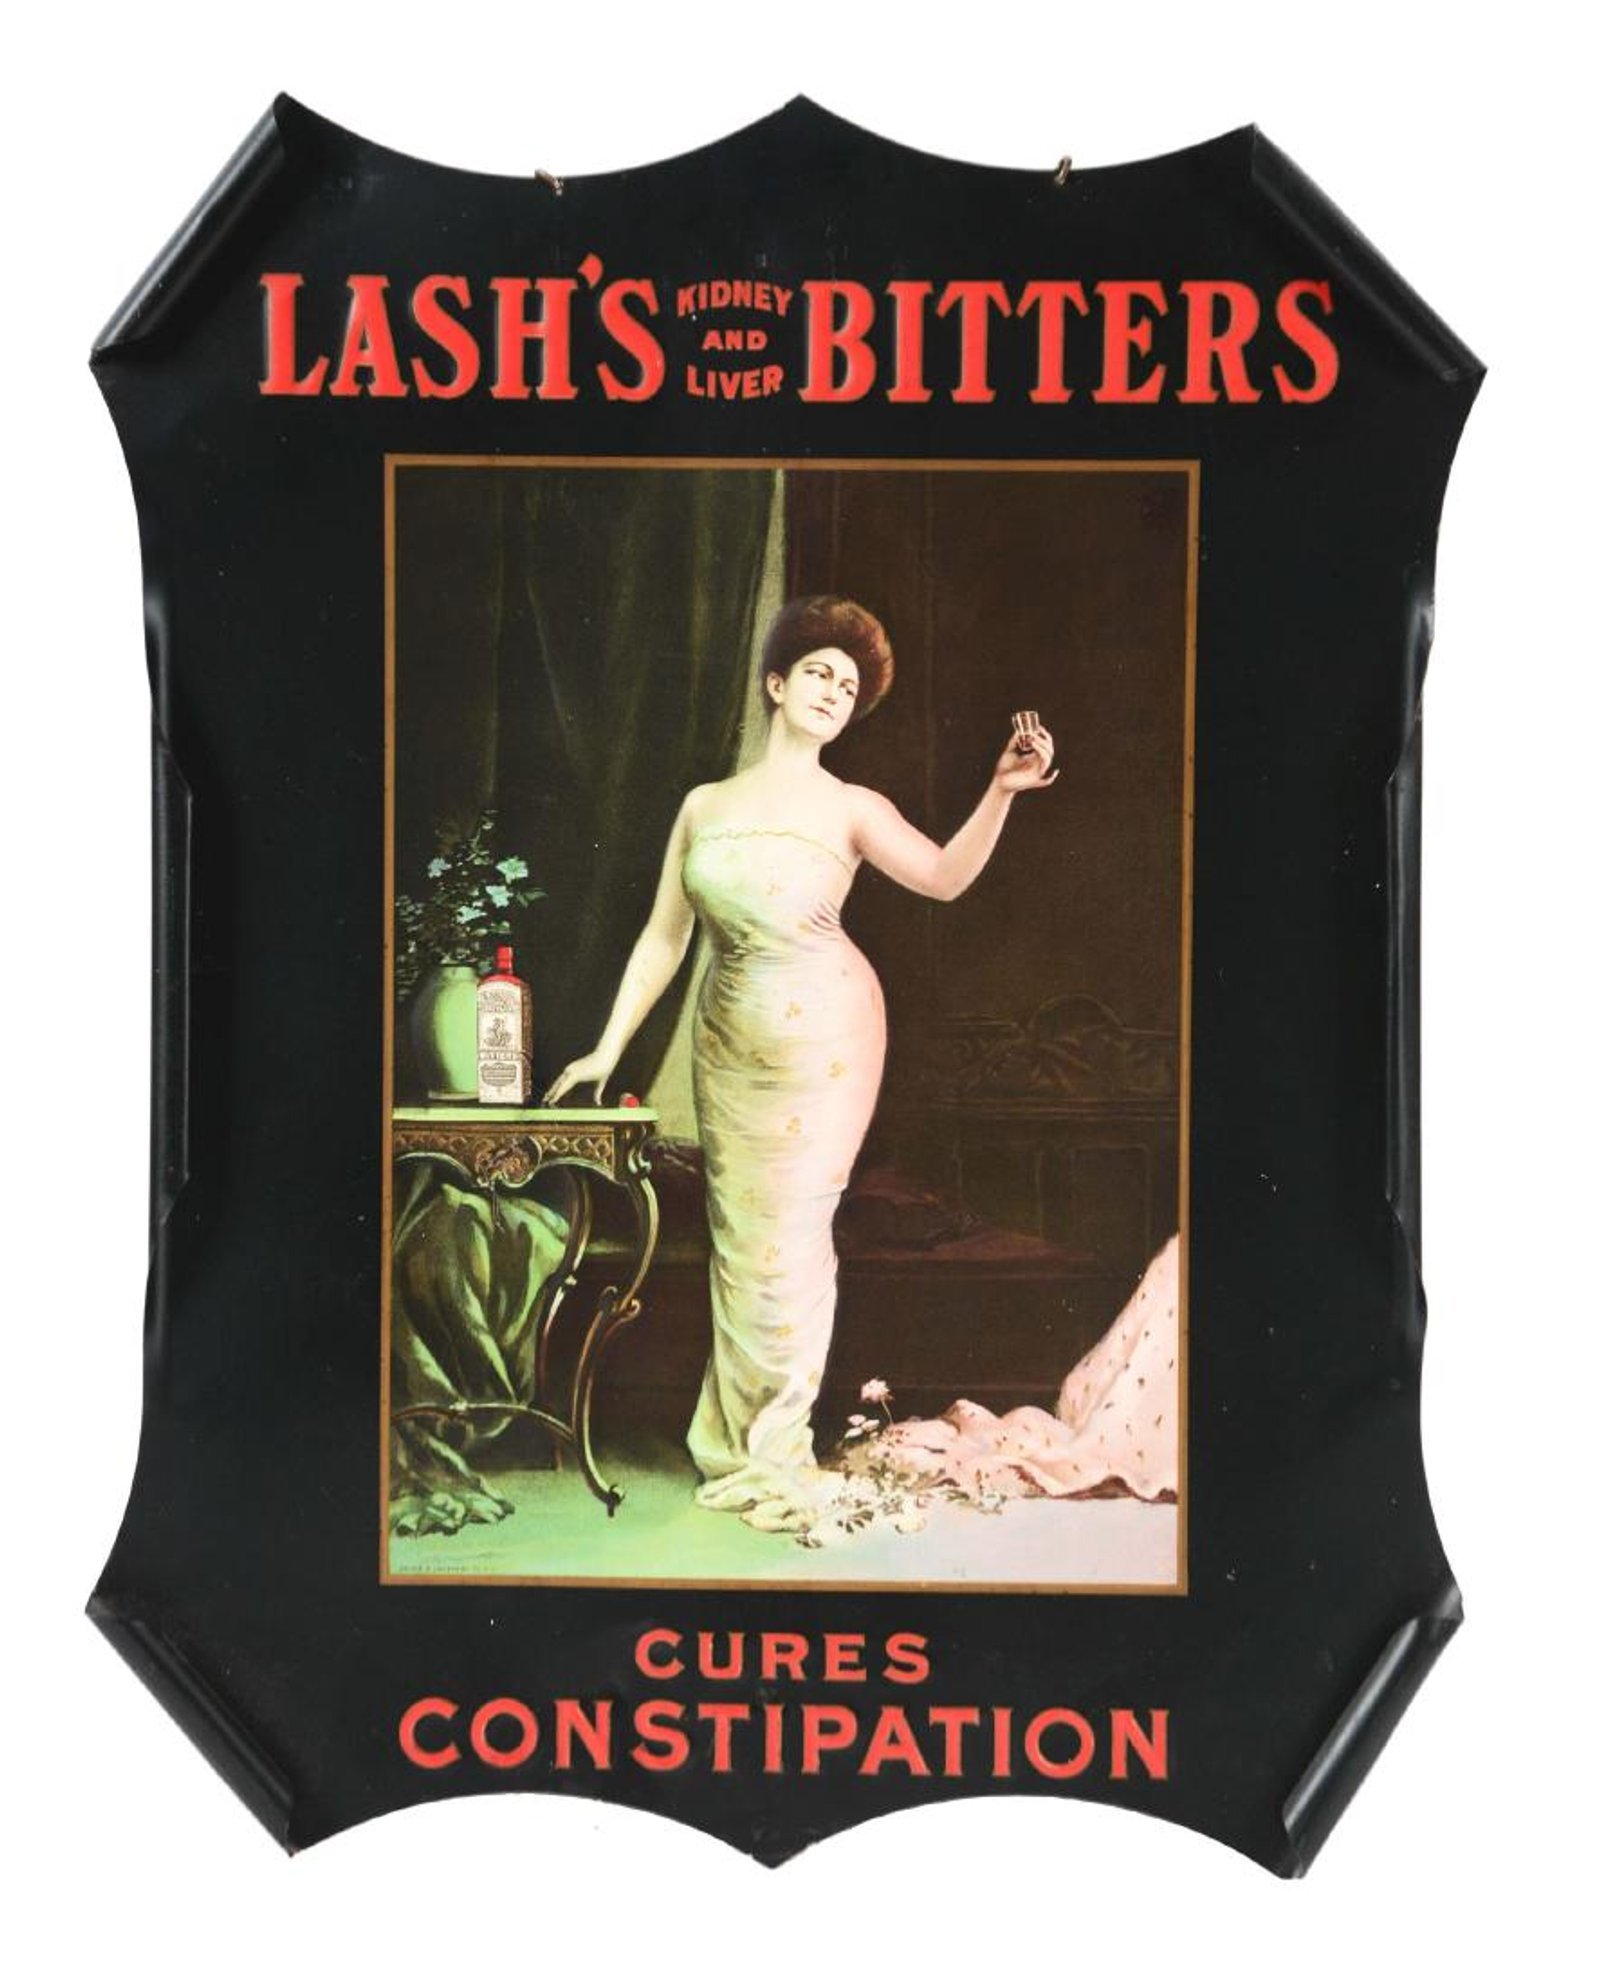 Lash's Kidney & Liver Bitters Tin Sign. Circa 1900